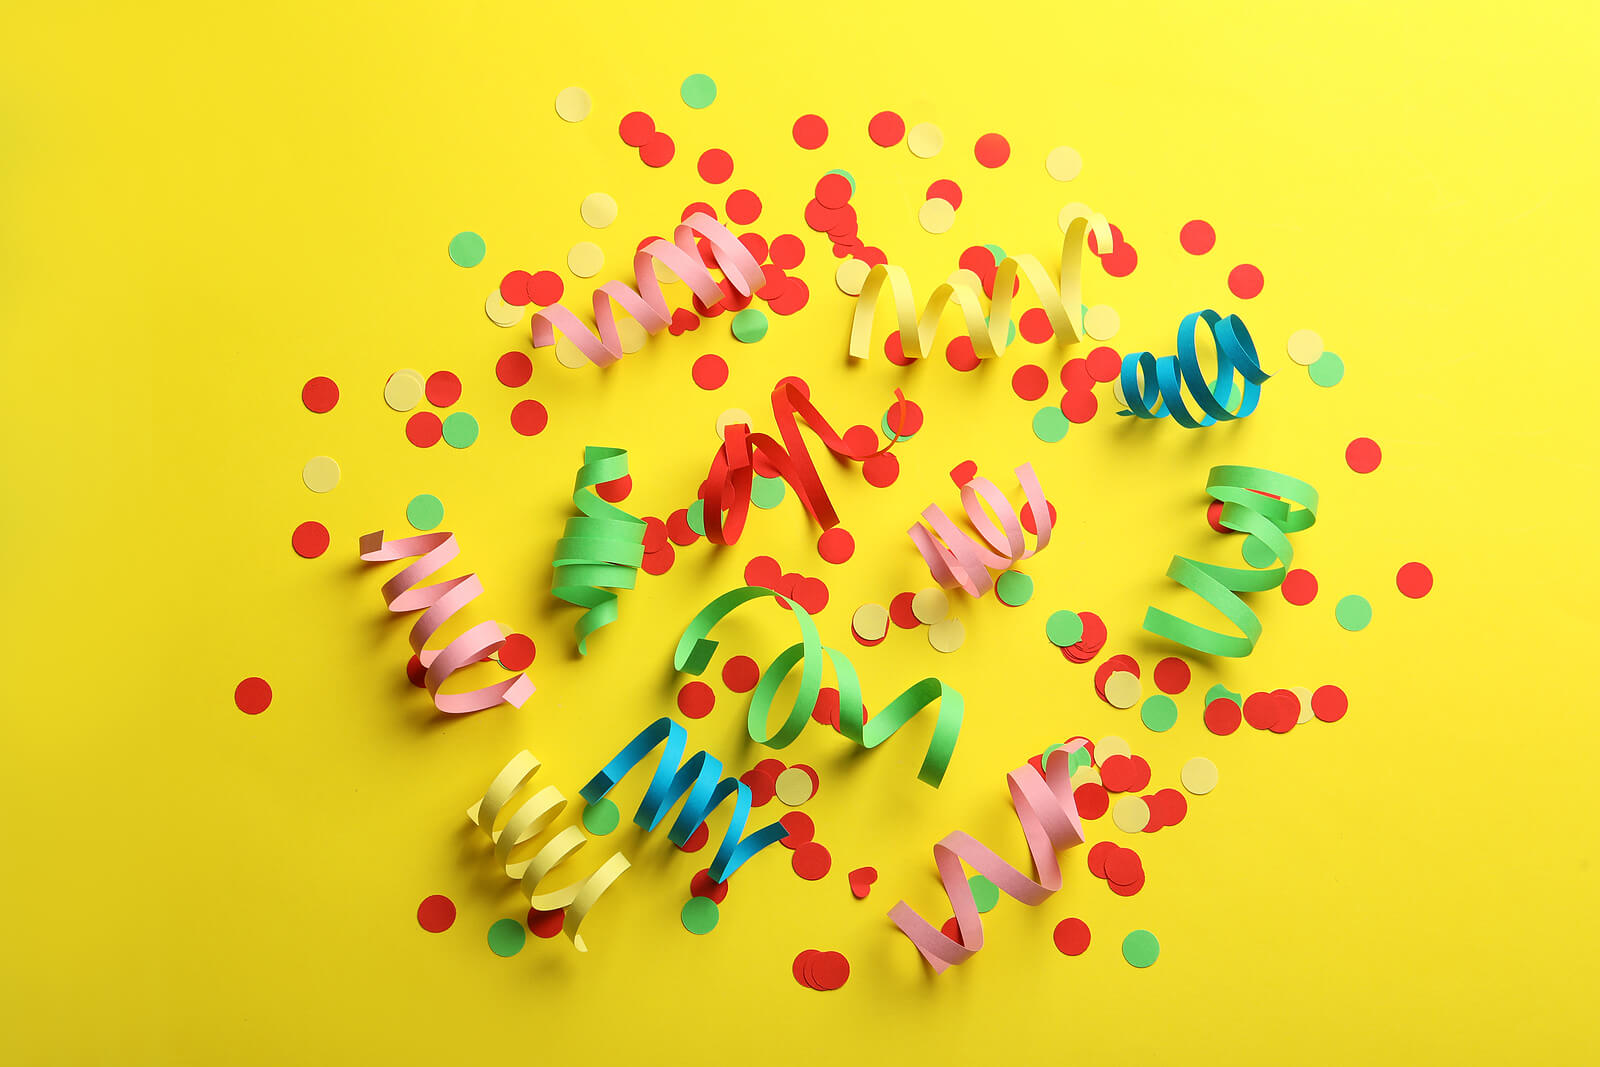 Paper streamers and confetti on a yellow background